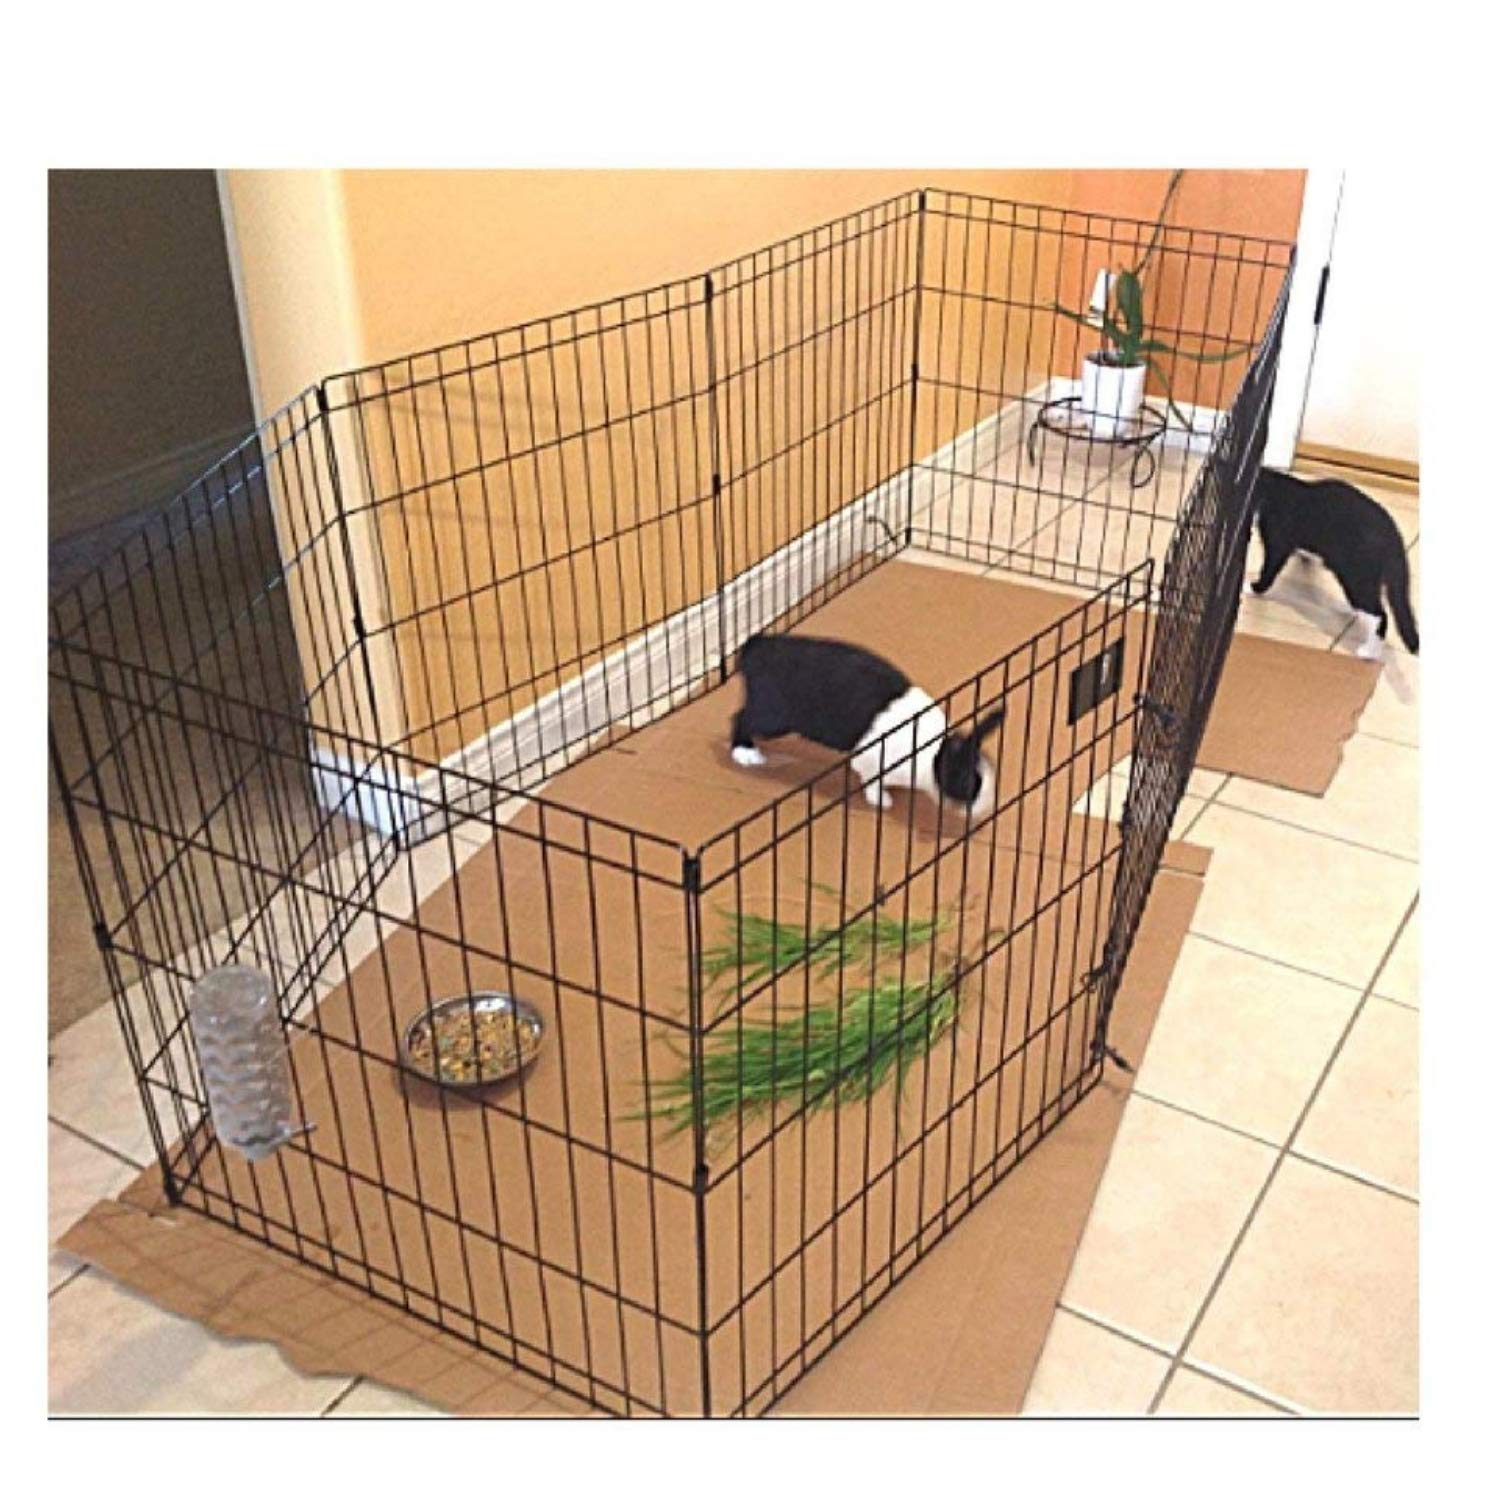 Bunny Rabbit Pen Exercise Indoor 30-Inch with Door House Pet Dog 8 Panel Gate Yard Enclosure X Pen Xpen Fence Playpen & eBook by OISTRIA by Bunny Rabbit